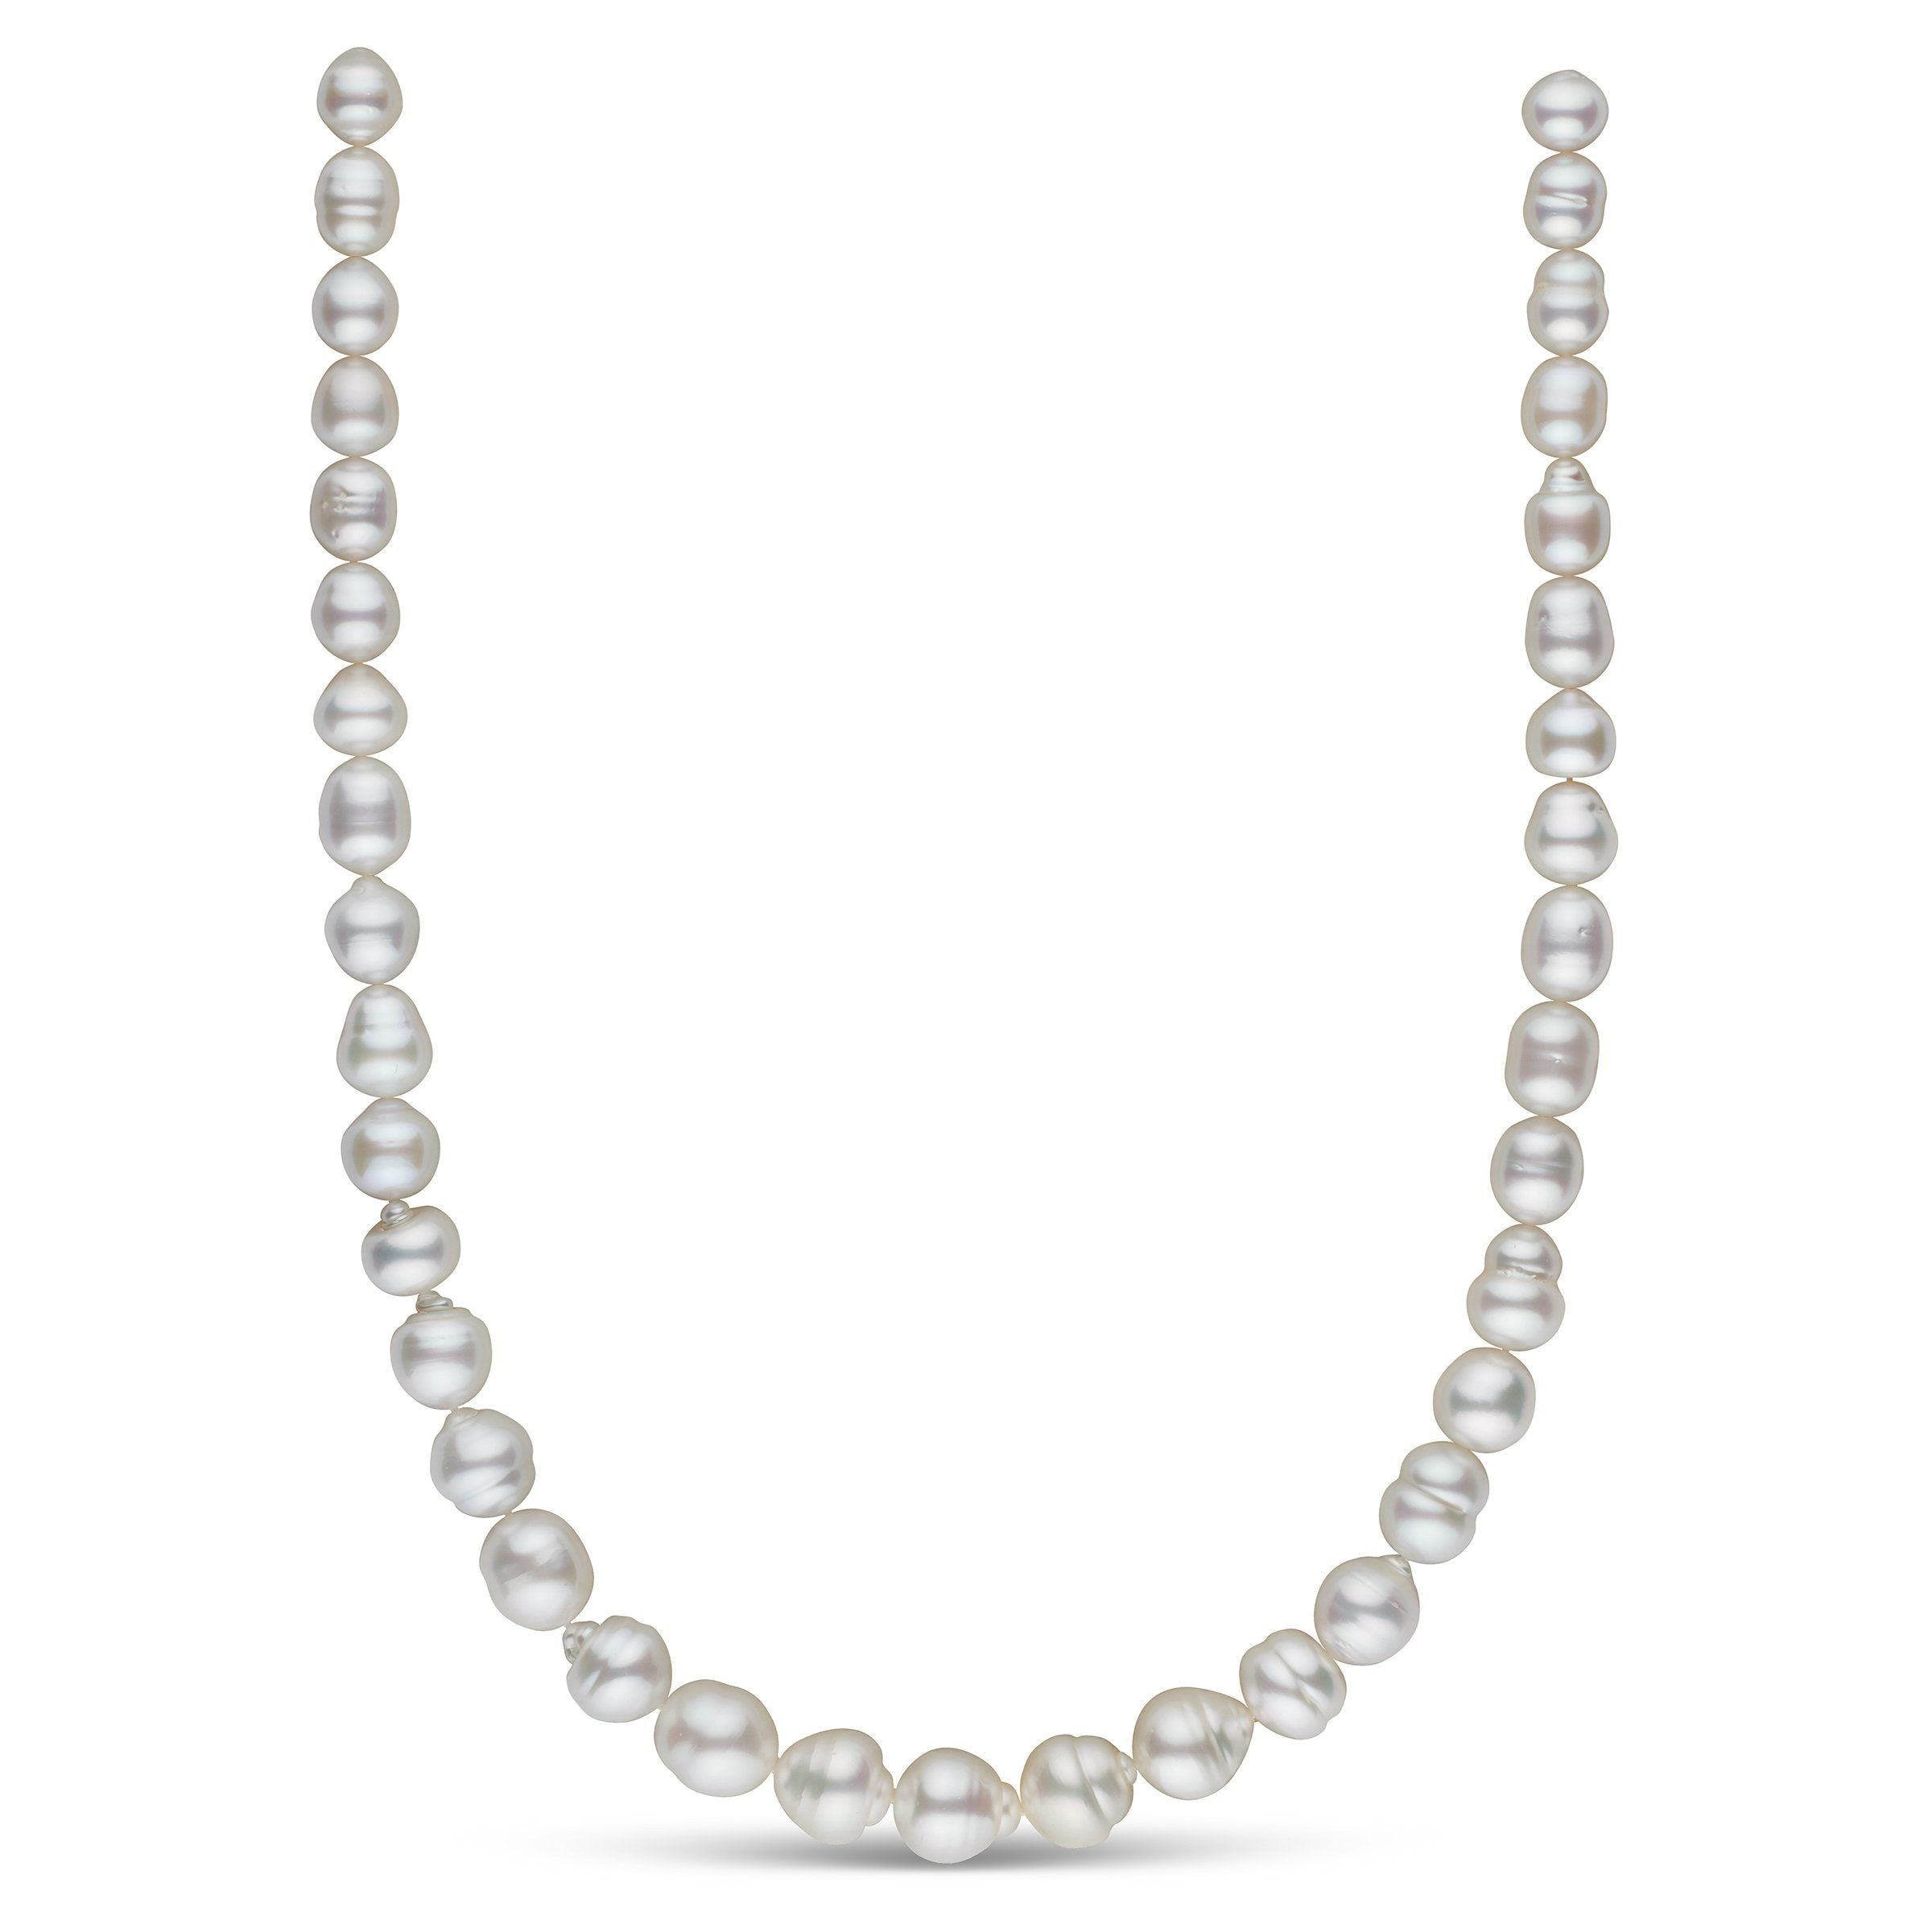 8.5-11.7 mm AA+/AAA White South Sea Baroque Necklace